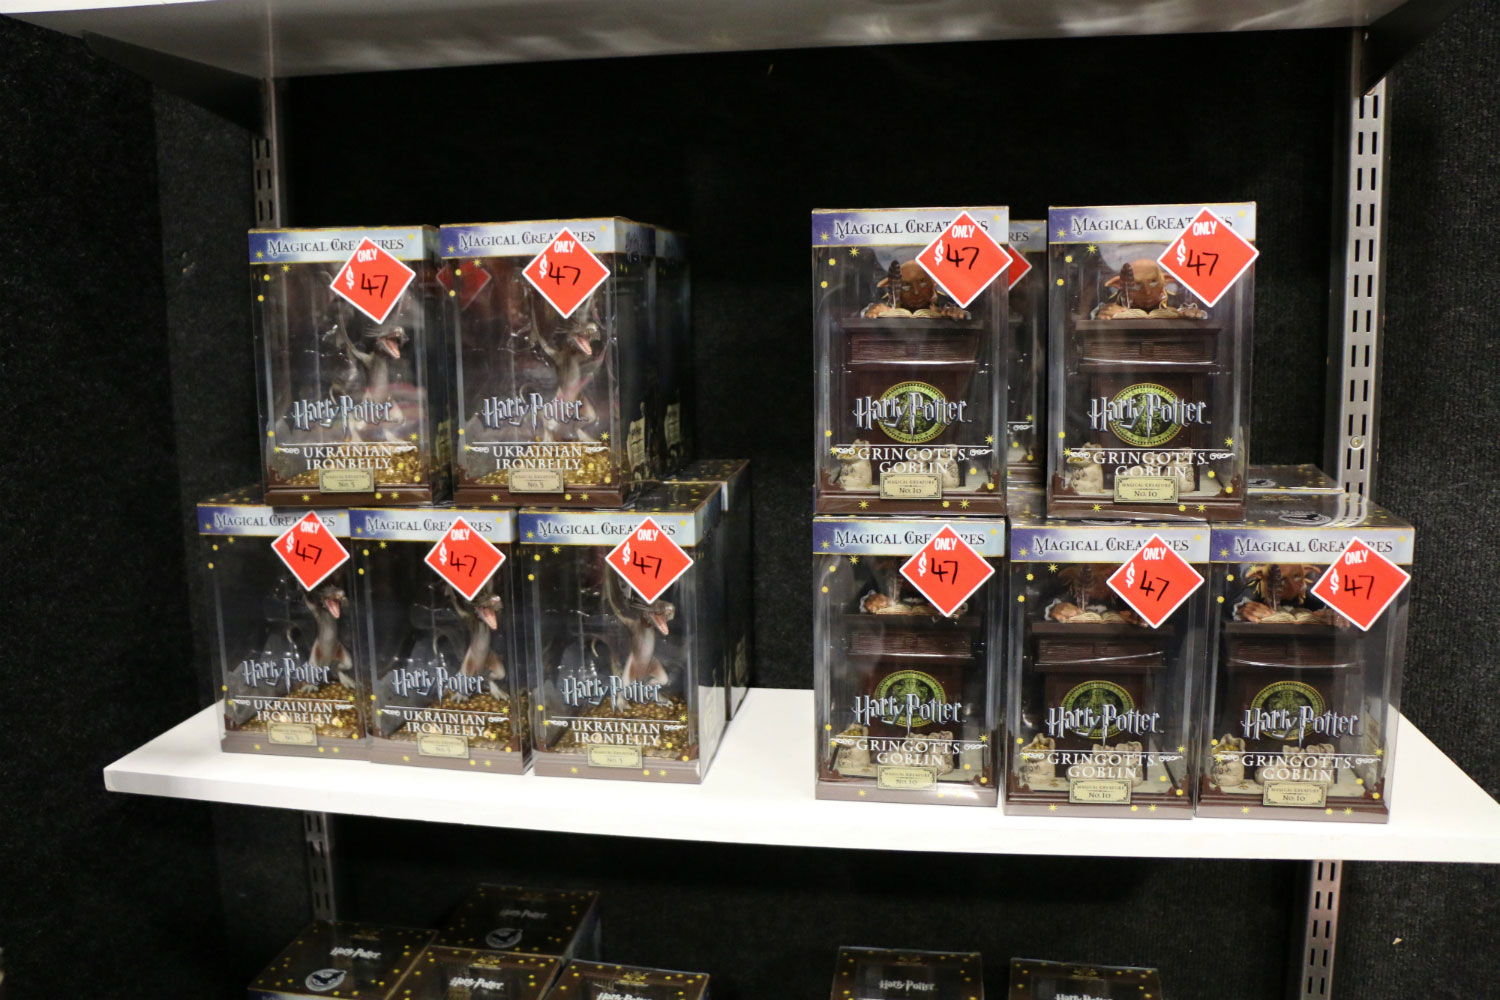 Armageddon Expo 2017 – Auckland – Harry Potter Merchandise – 11 (Photo credit: Tracey Wong)